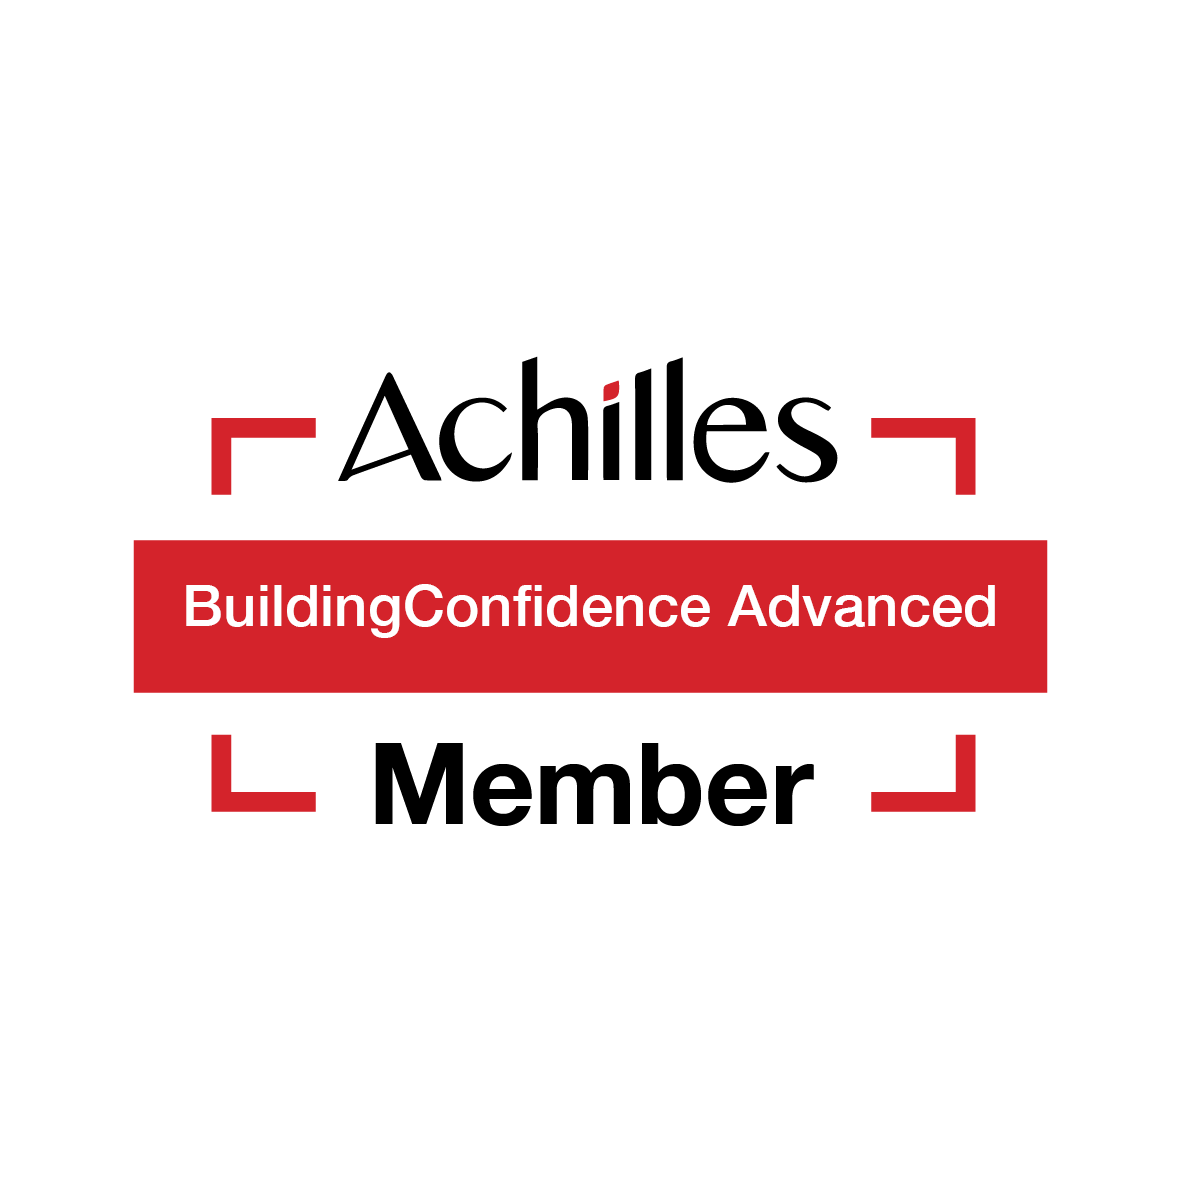 Filter Designs are building confidence through Achilles